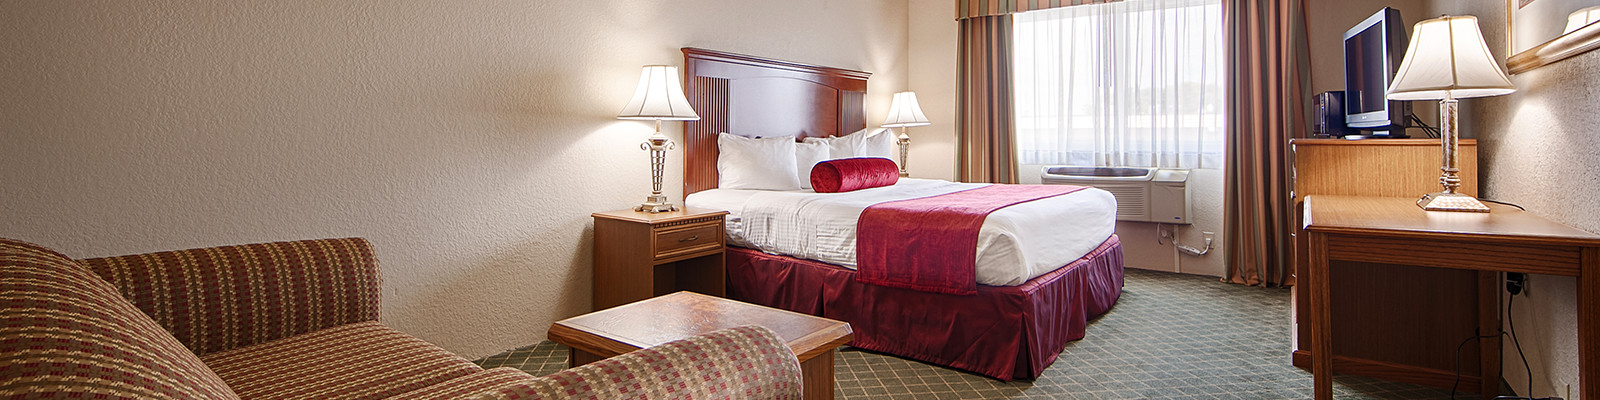 Hotels in Shakopee MN